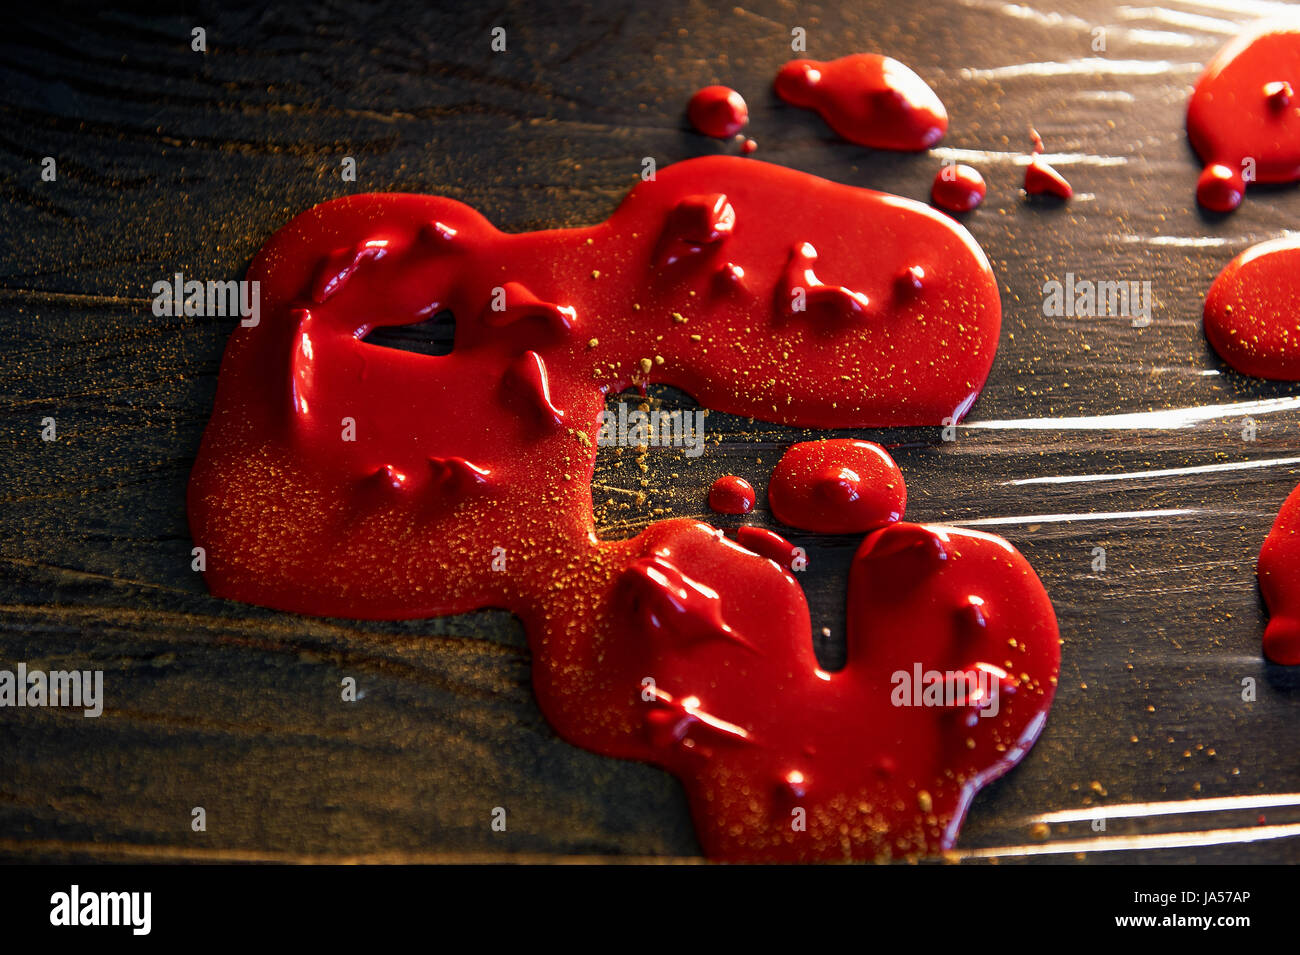 Drops frozen mirror glaze for decorating cakes and pastries. food film - Stock Image